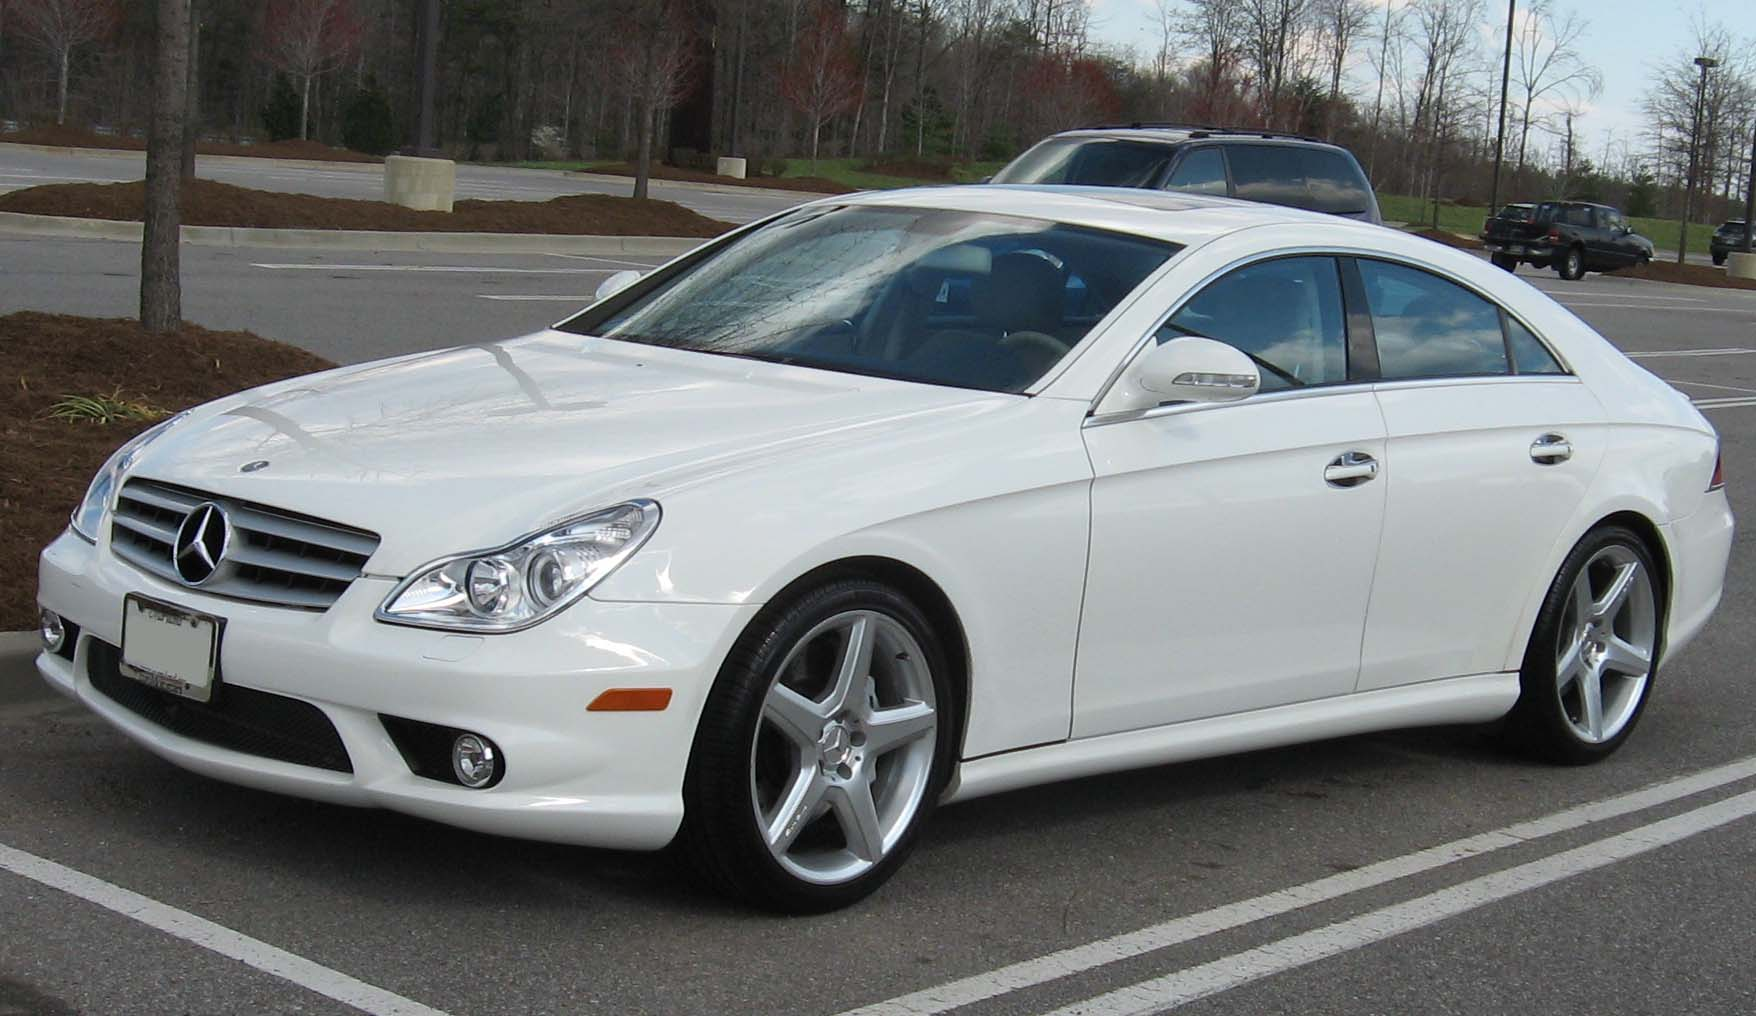 file 2006 mercedes benz cls55 amg wikipedia For2006 Mercedes Benz Cls55 Amg